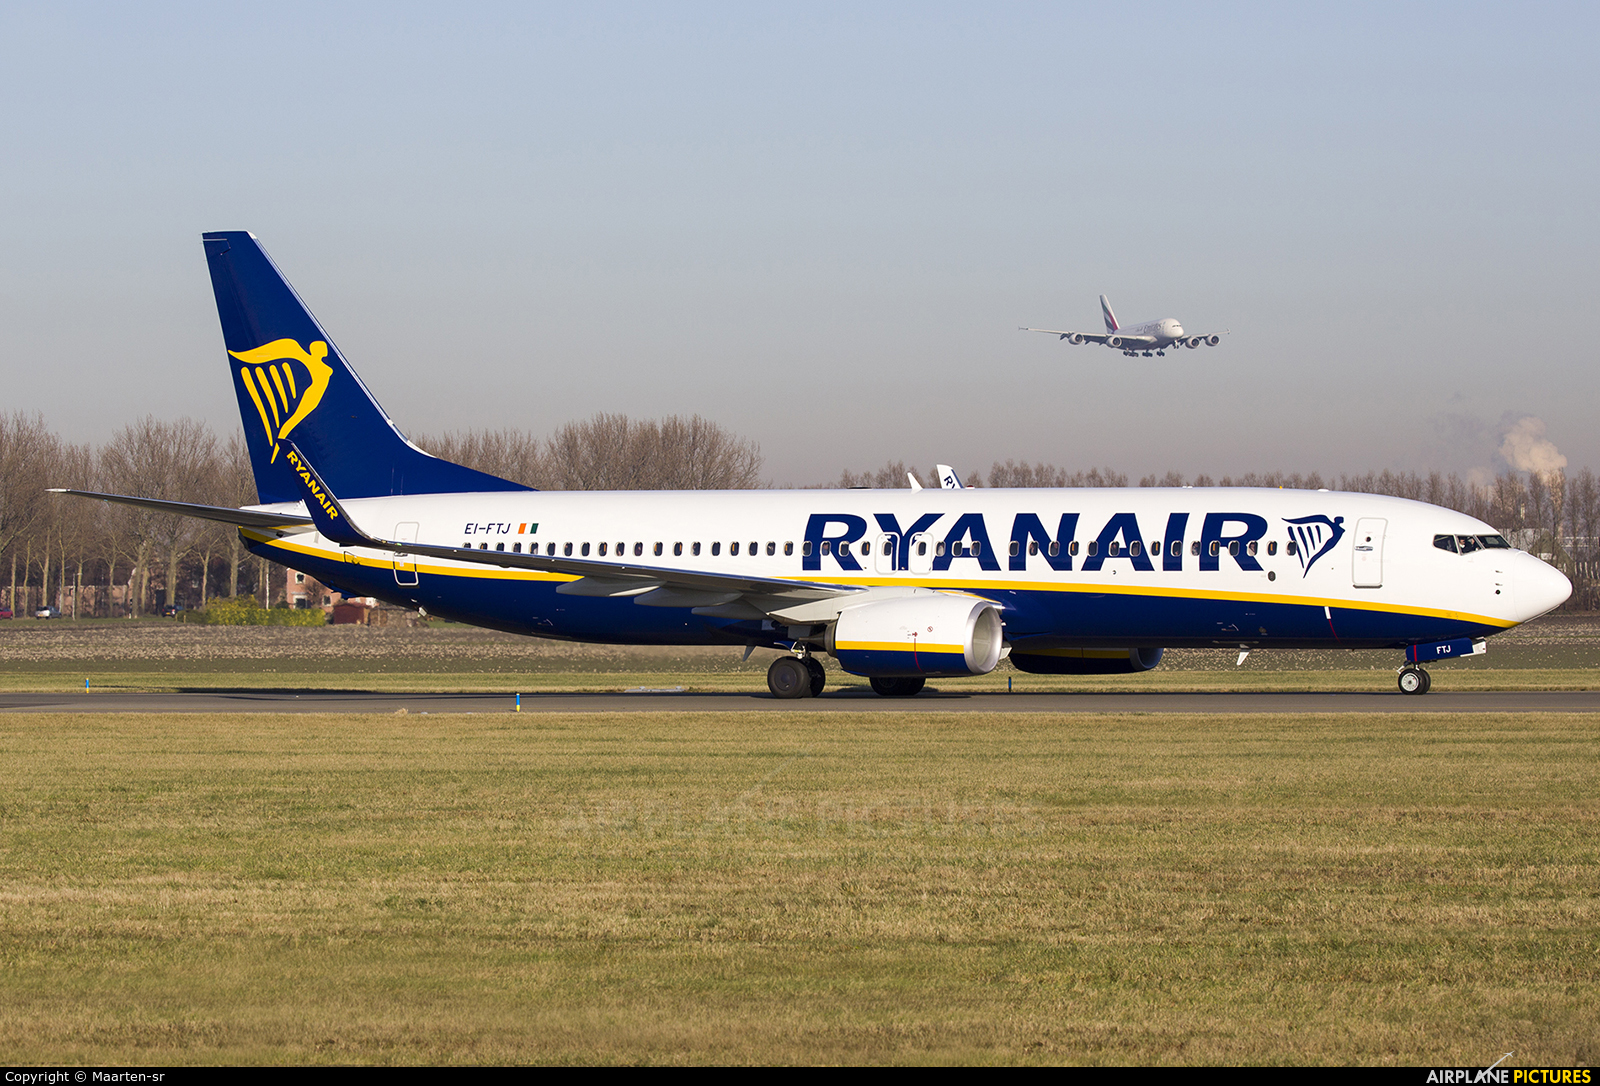 EI-FTJ - Ryanair Boeing 737-800 at Amsterdam - Schiphol   Photo ID 832927   Airplane-Pictures.net